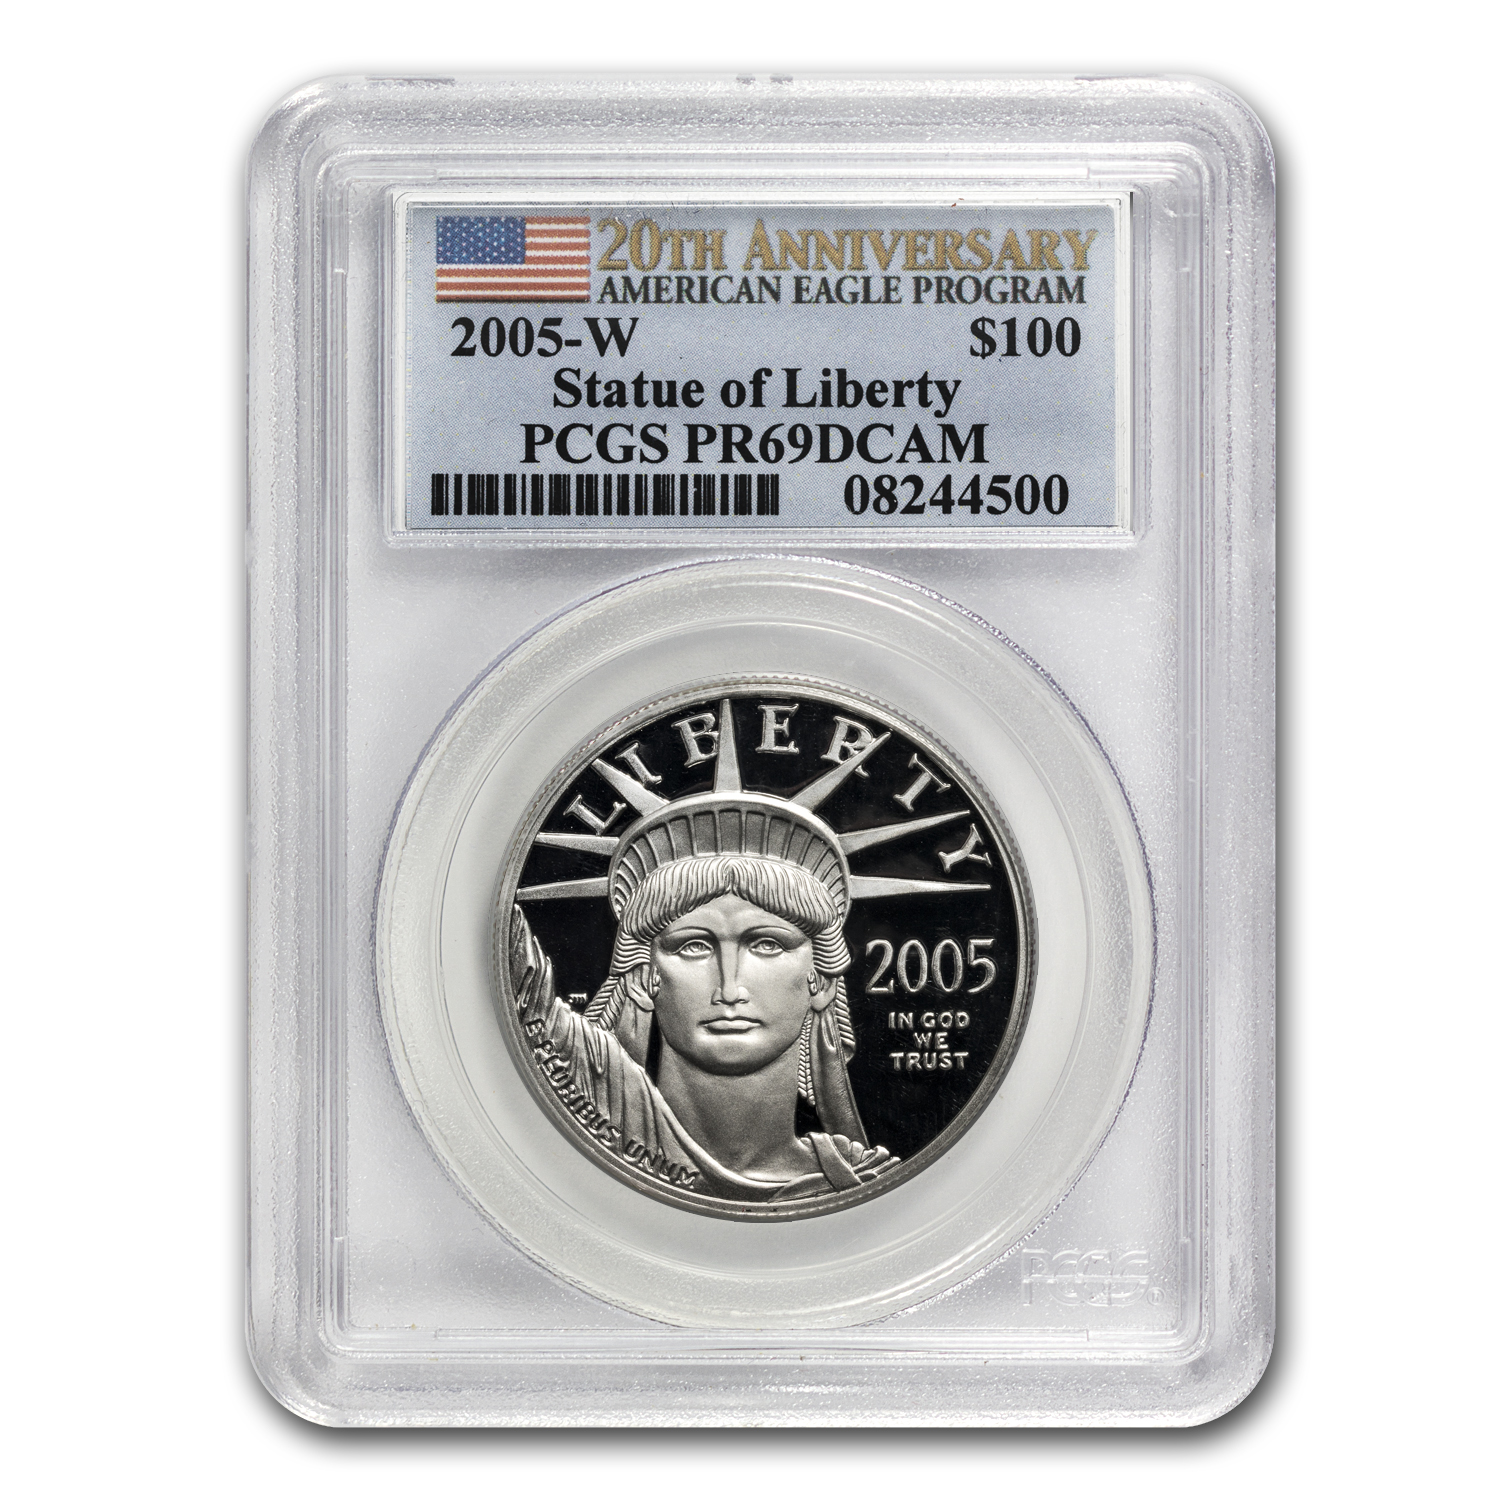 2005-W 1 oz Proof Platinum American Eagle PR-69 PCGS